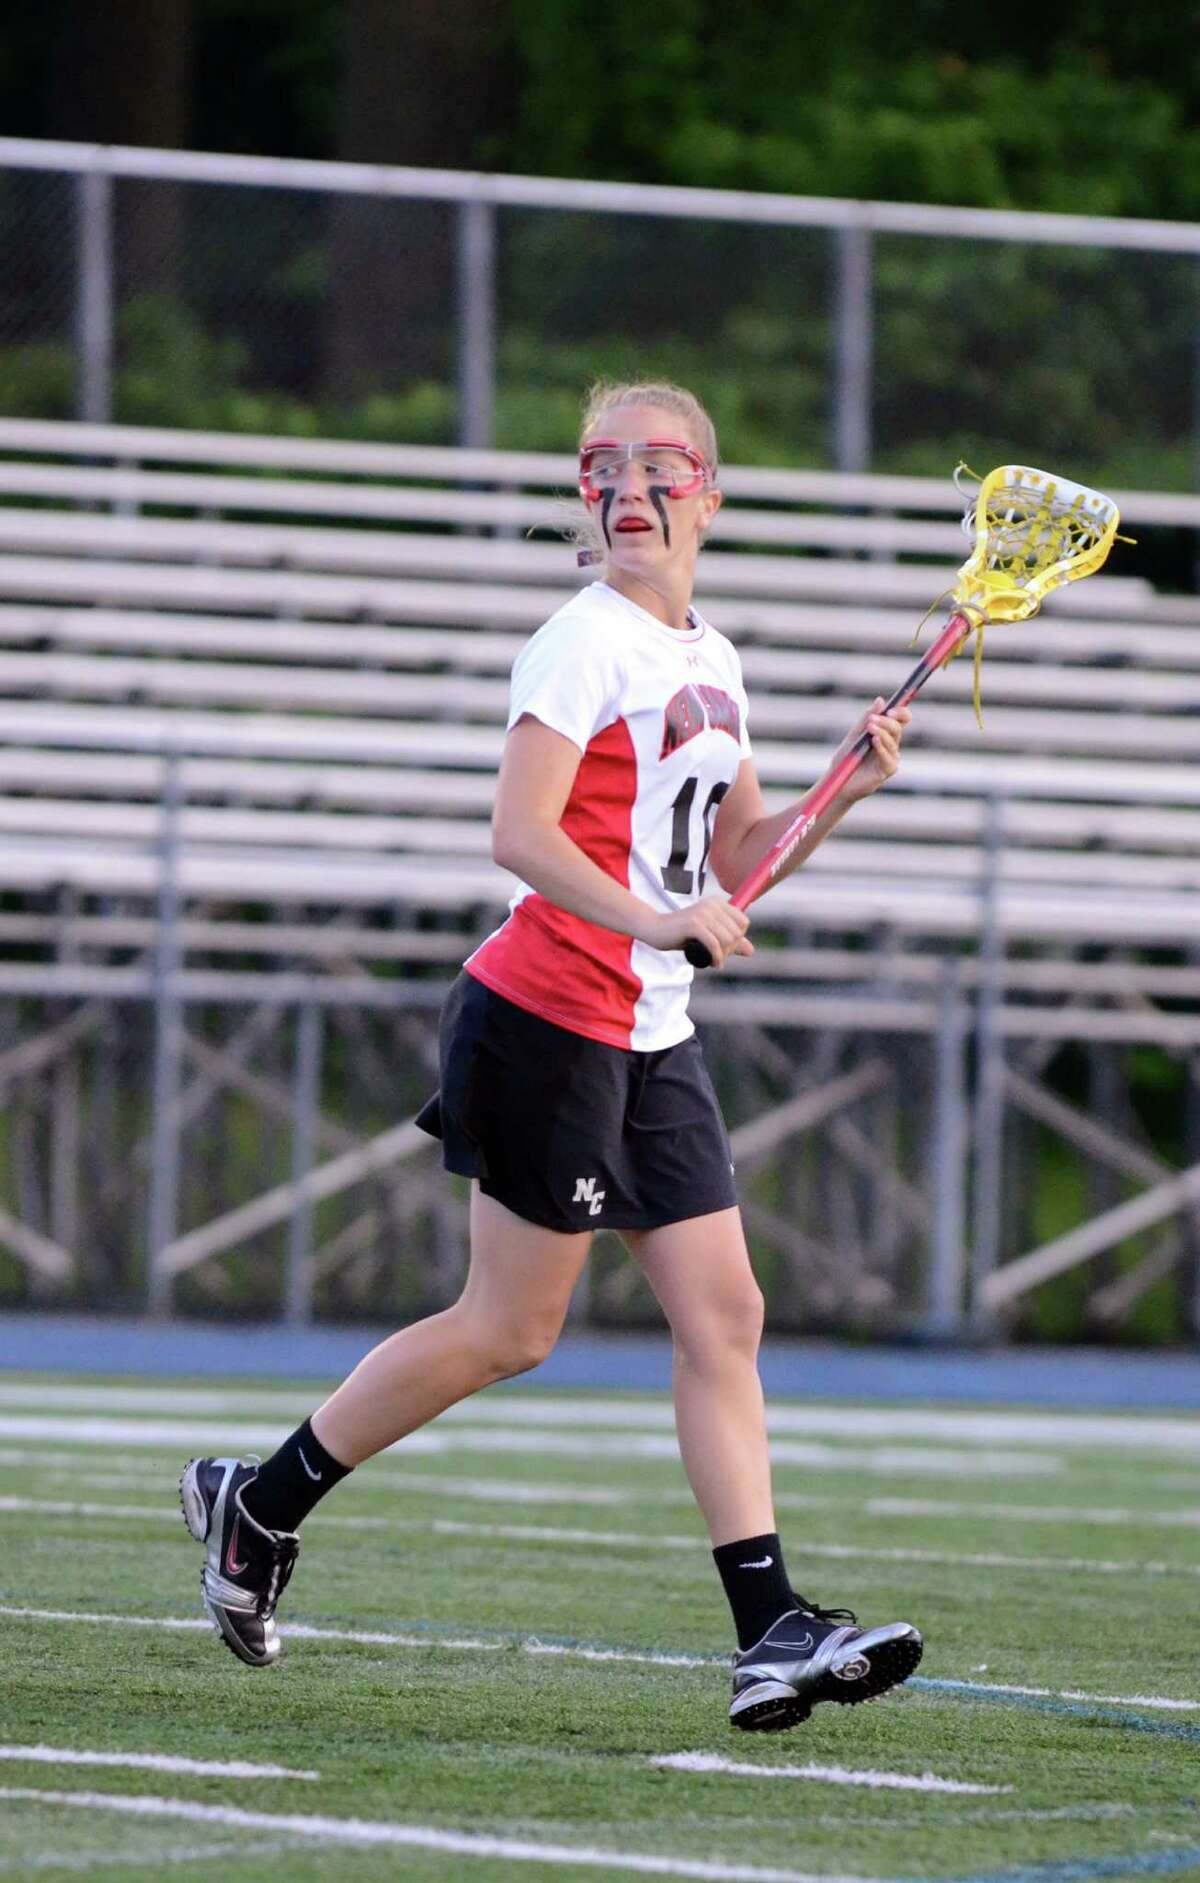 New Canaan's Sarah Mannelly (10) controls the ball during the girls lacrosse Class M semifinals against New Fairfield at Bunnell High School in Stratford on Wednesday, June 6, 2012.